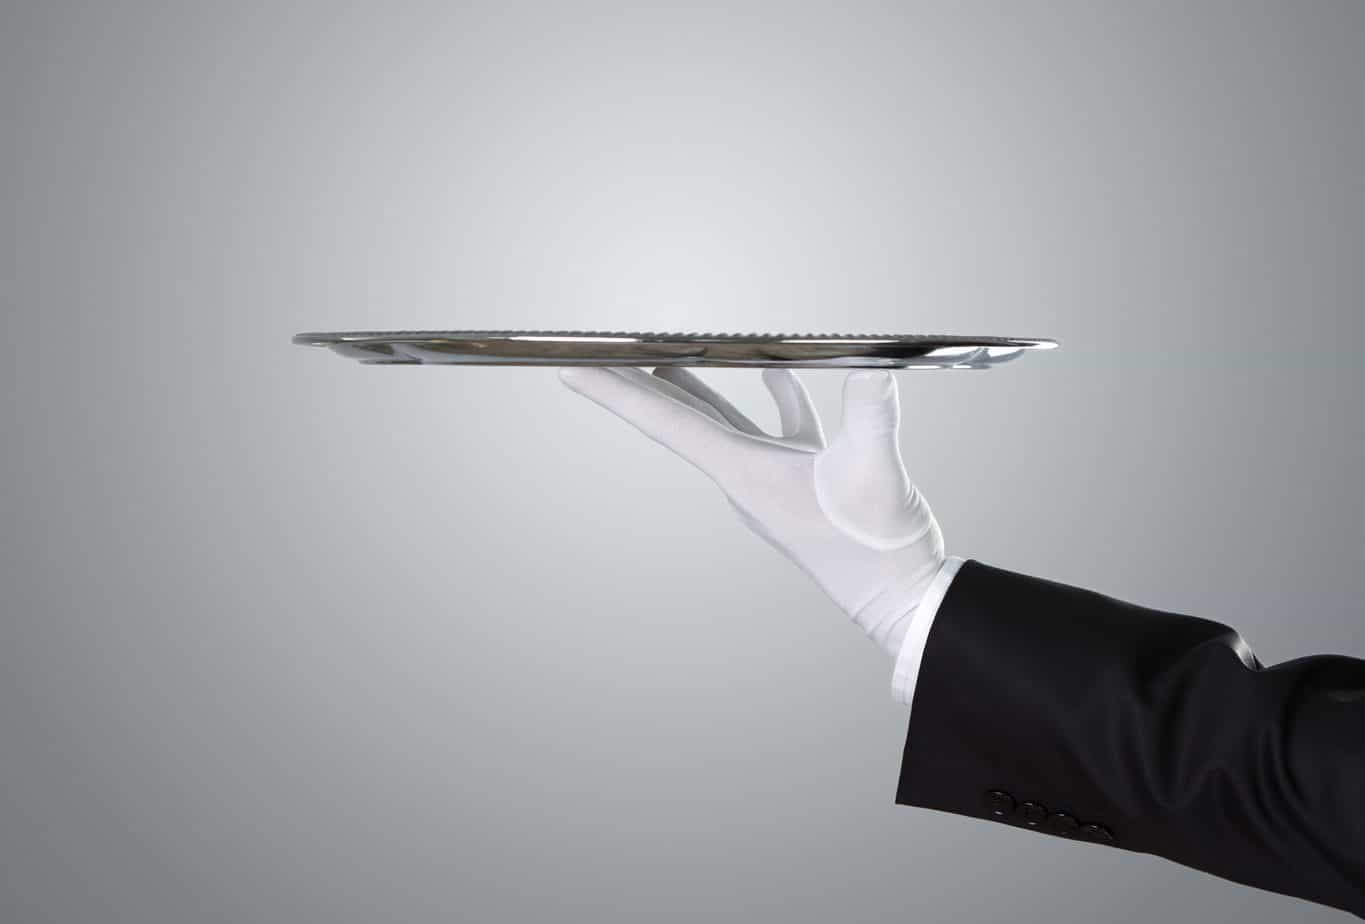 A butlers arm wearing a white glove holding a silver platter